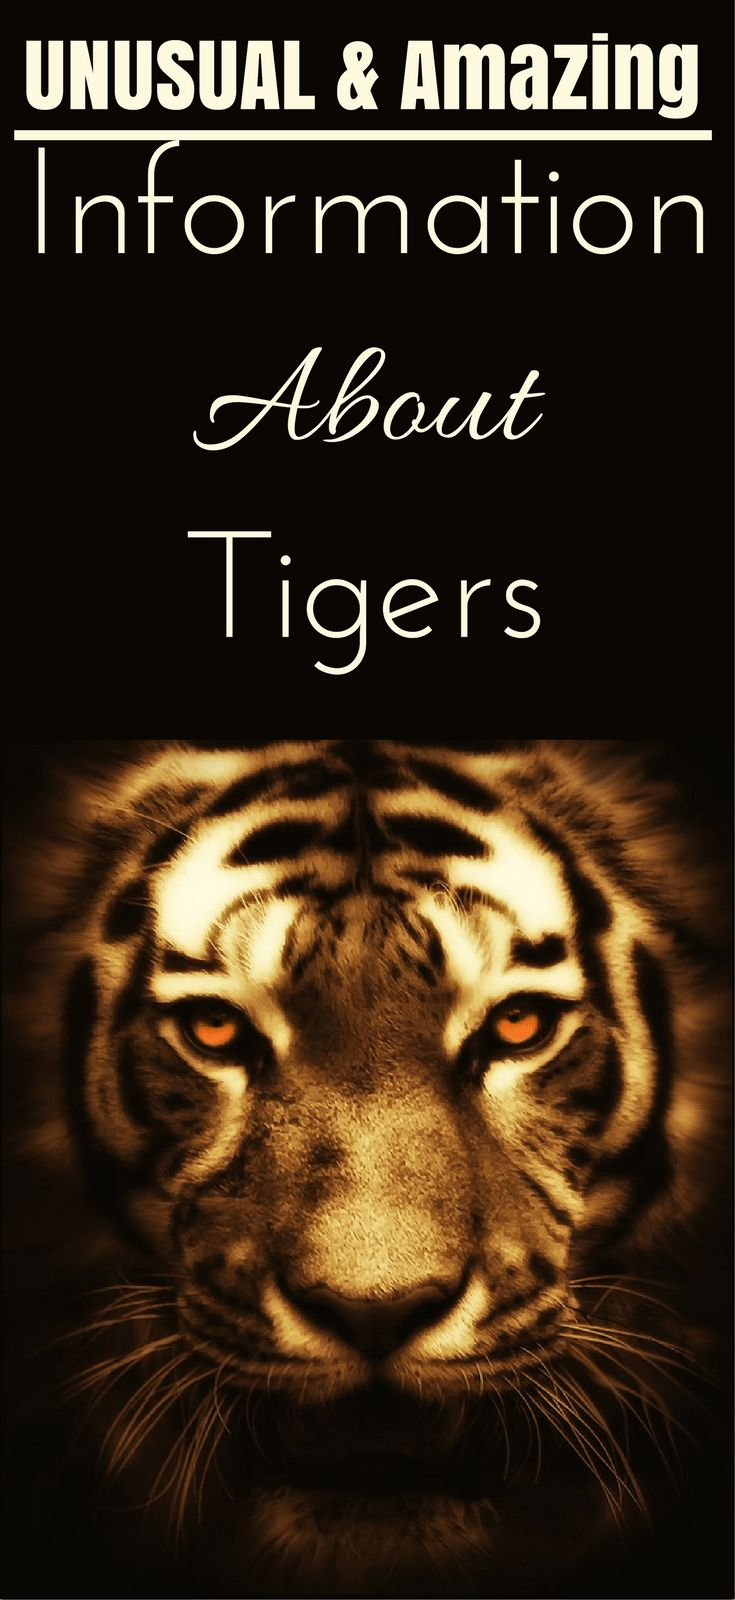 Unusual Amazing Information About Tigers #animals #tiger